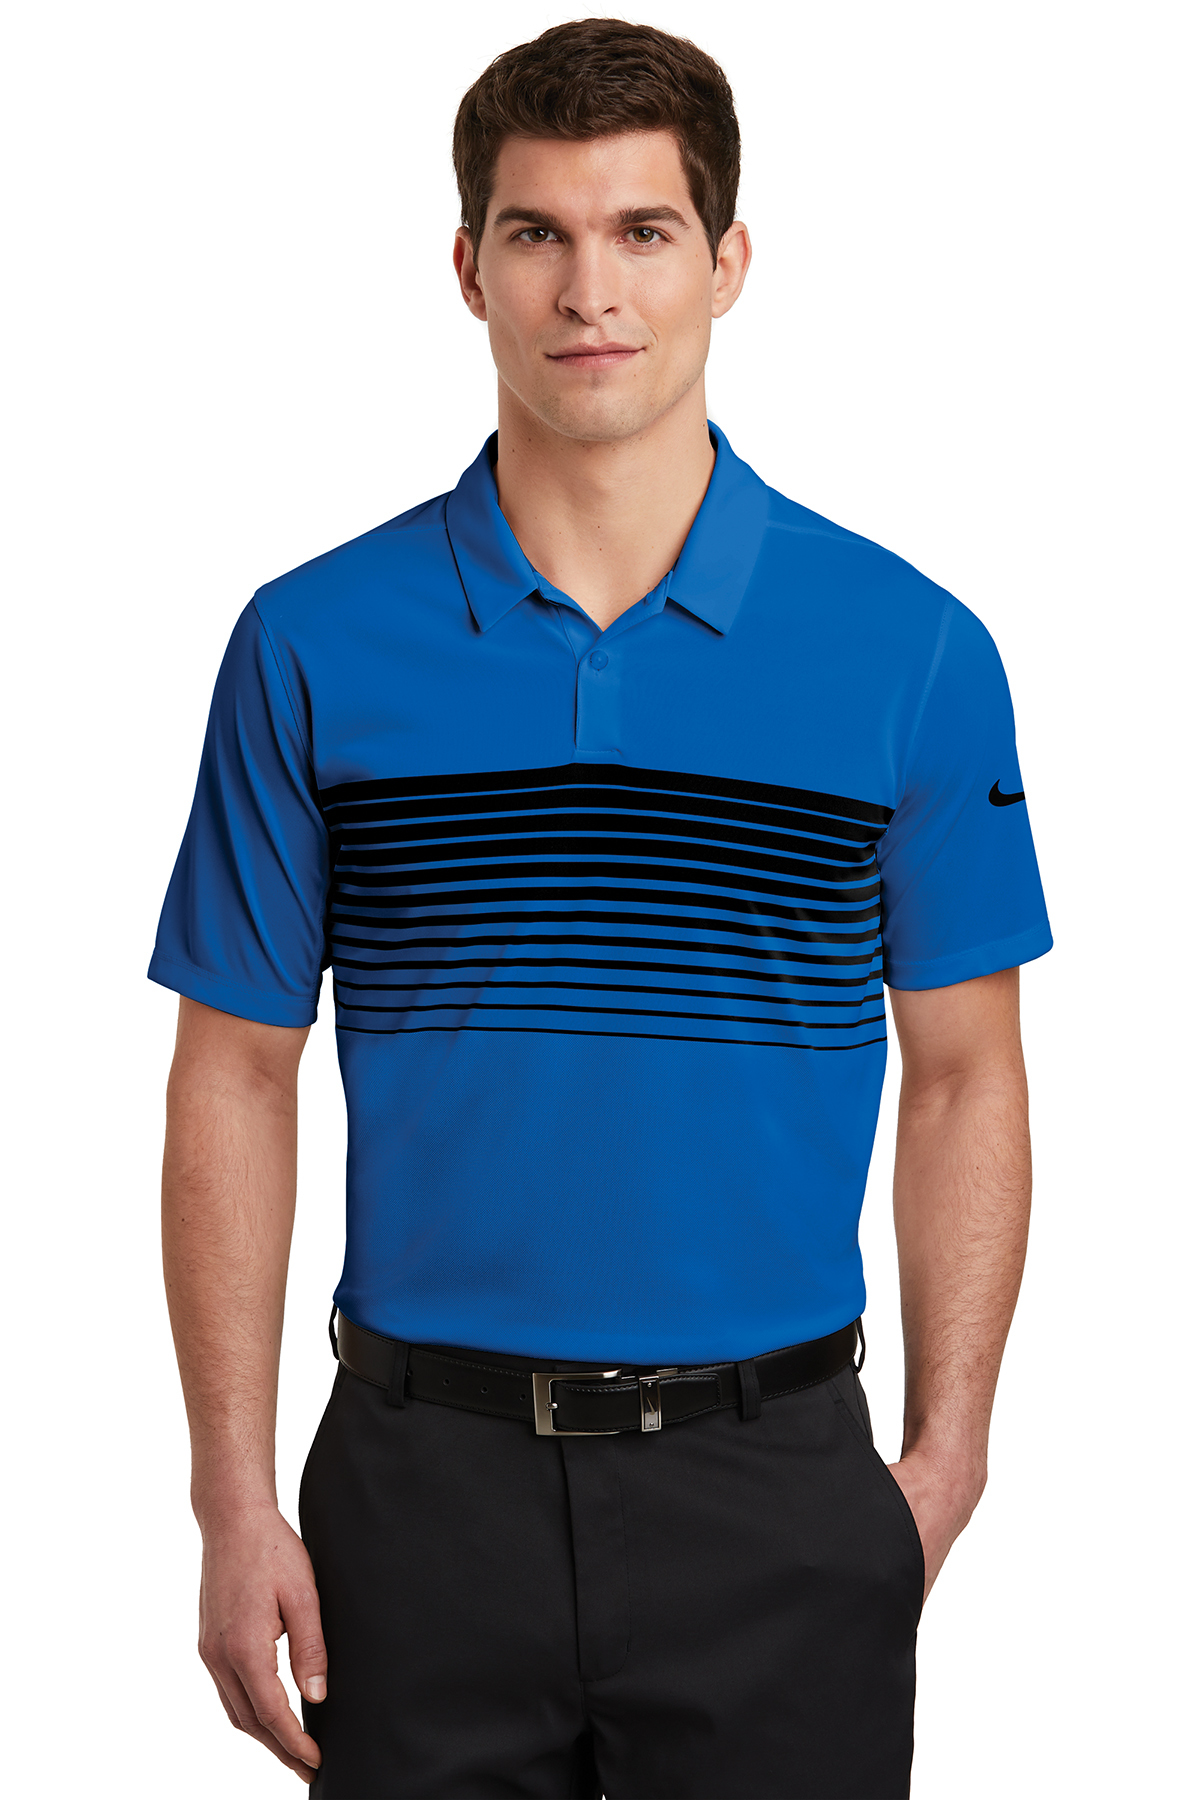 Nike Golf NKAA1855 - Nike Dri-FIT Chest Stripe Polo